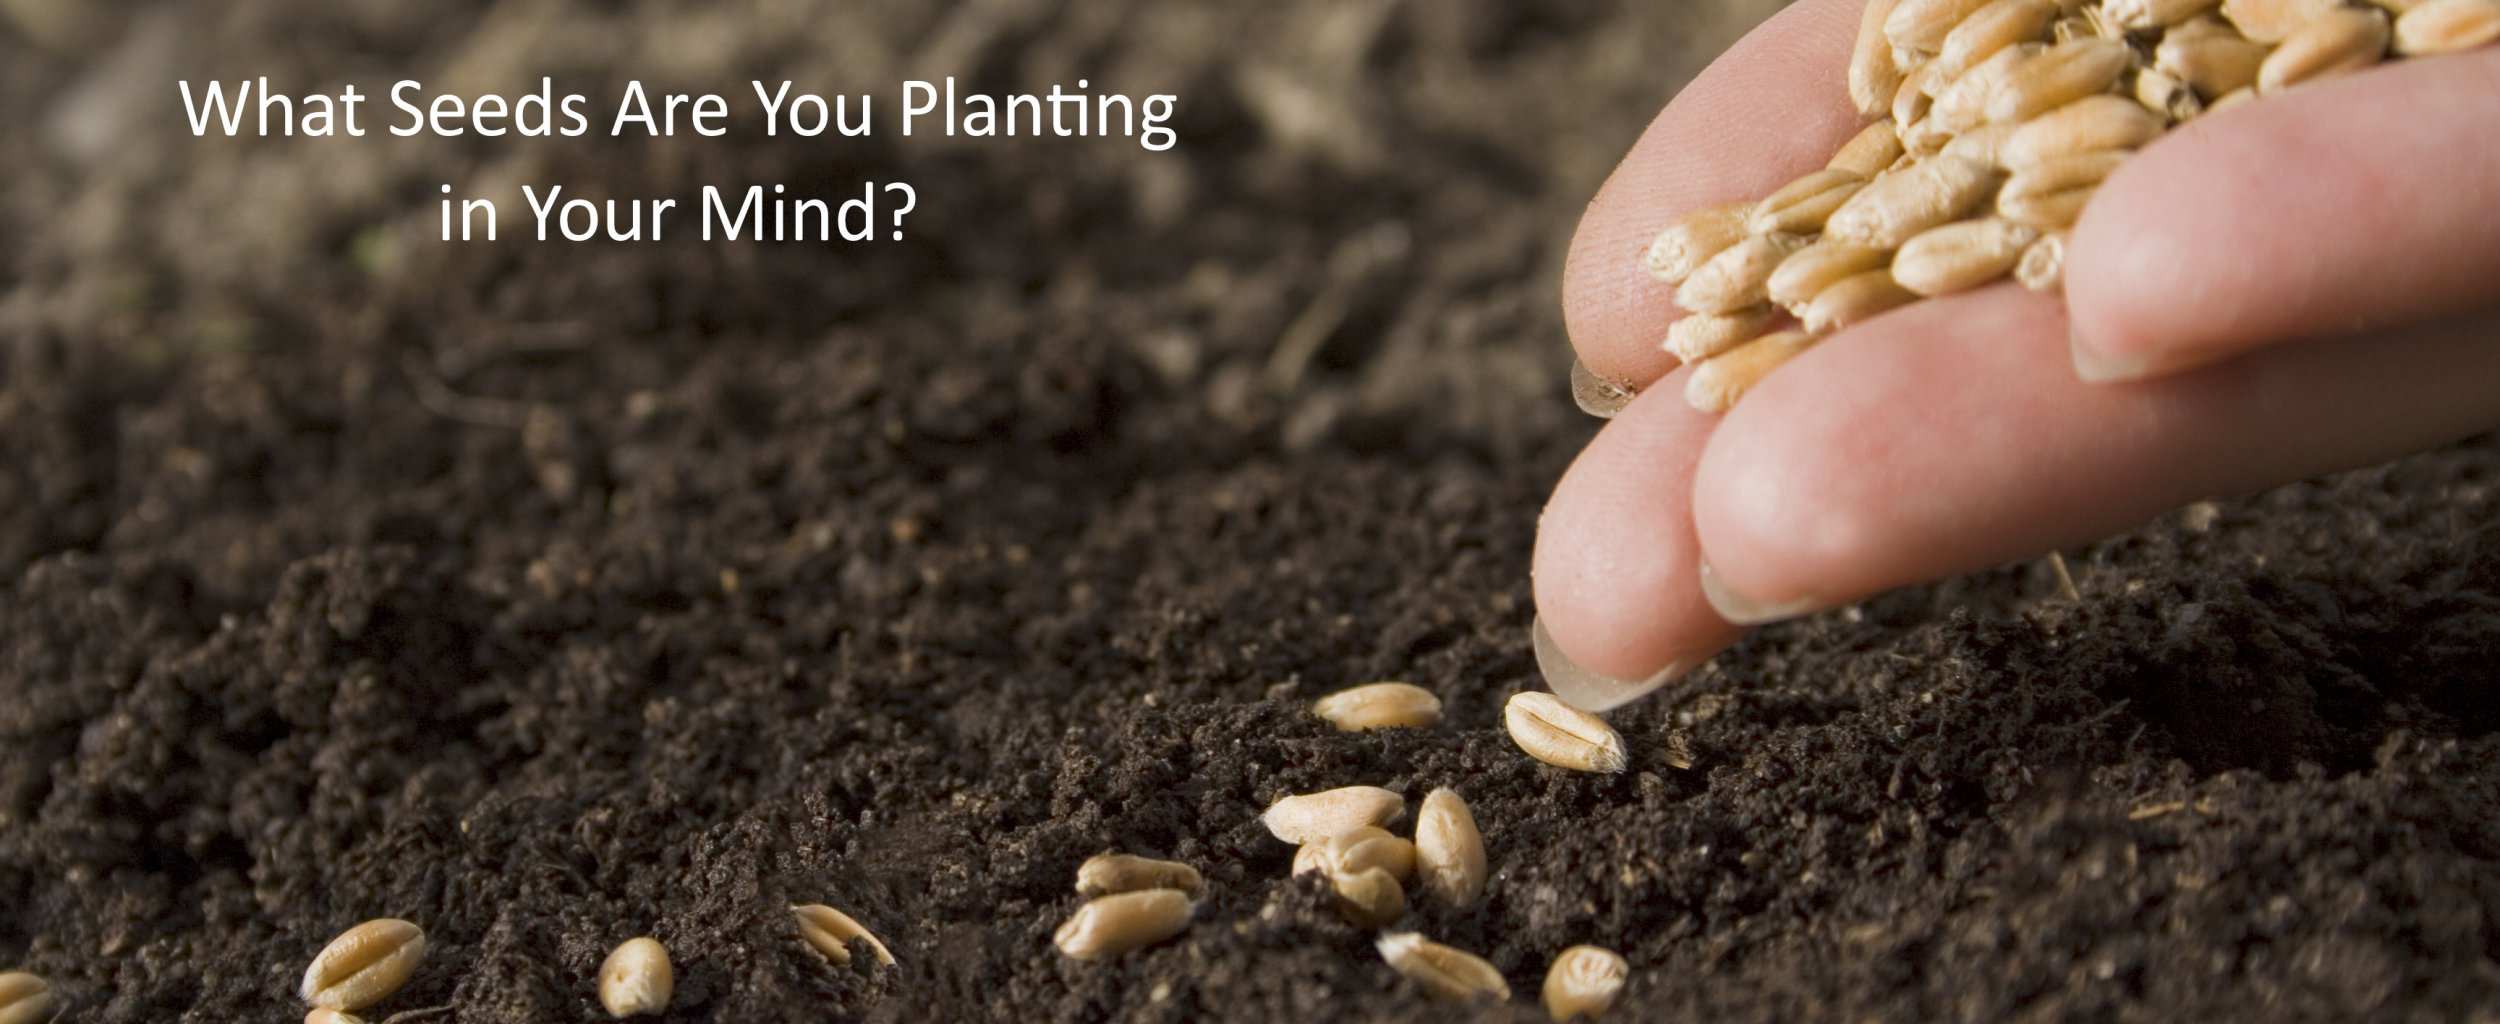 What Seeds are You Planting in Your Mind?